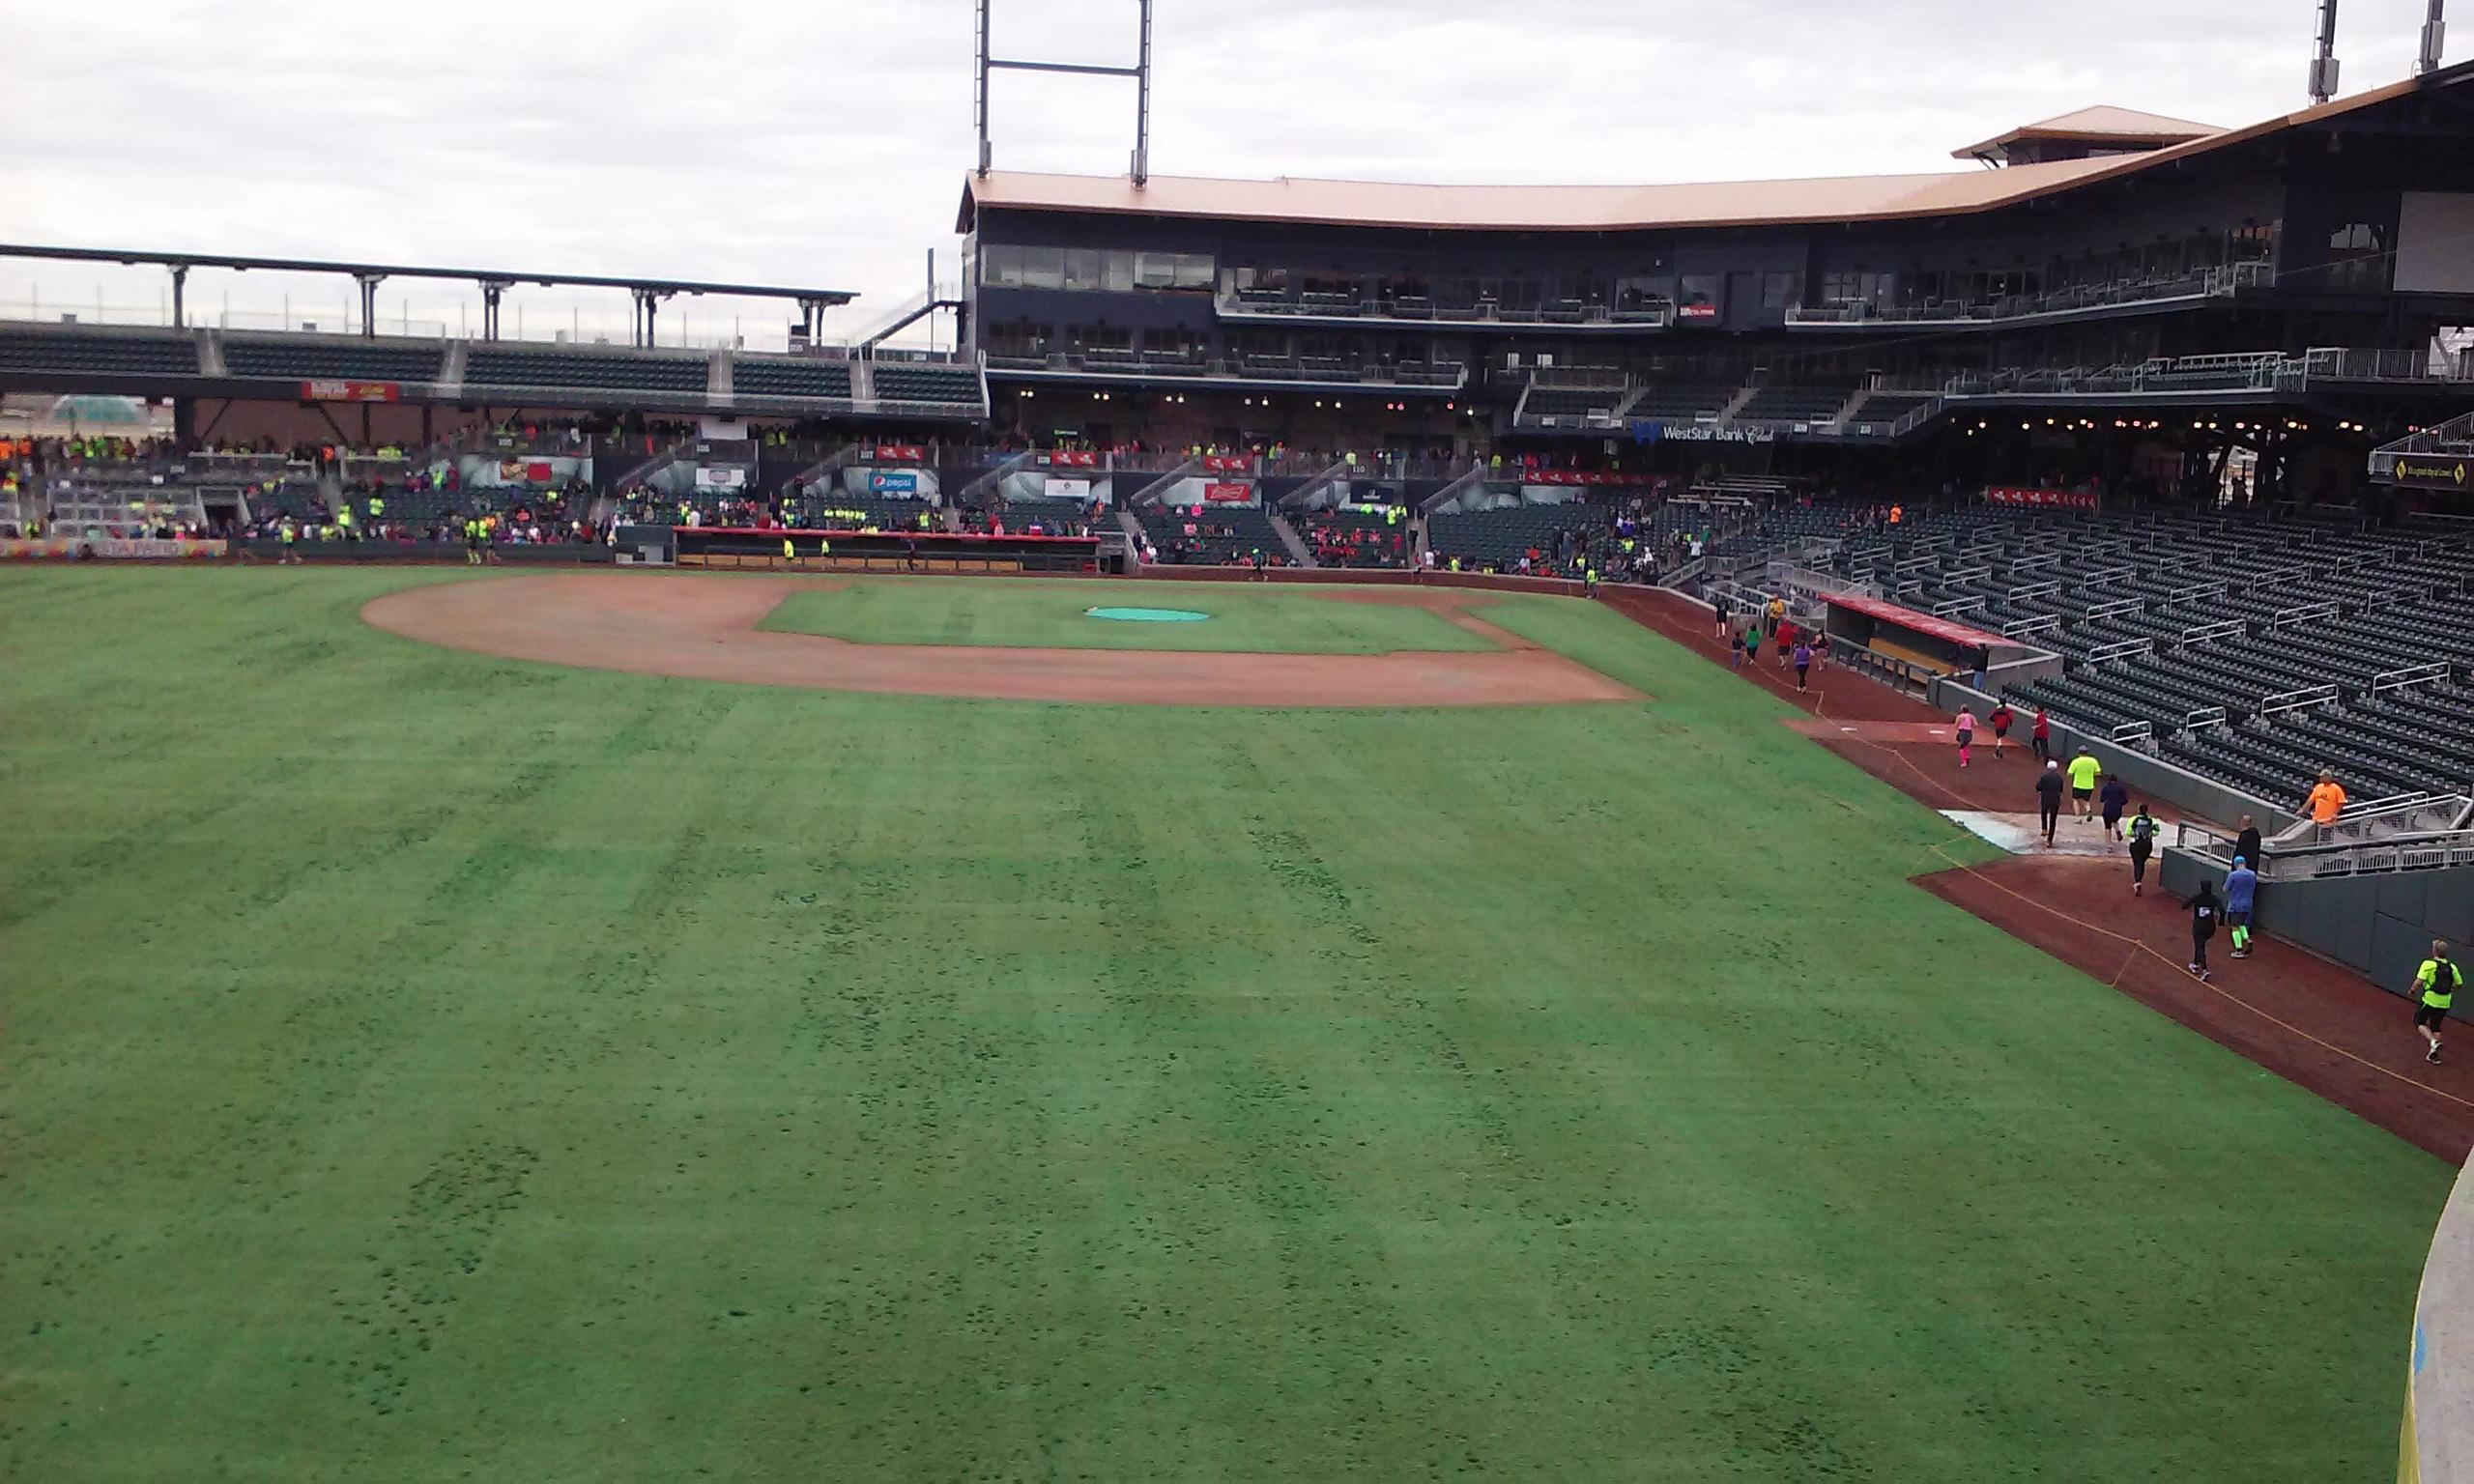 The ballpark in El Paso